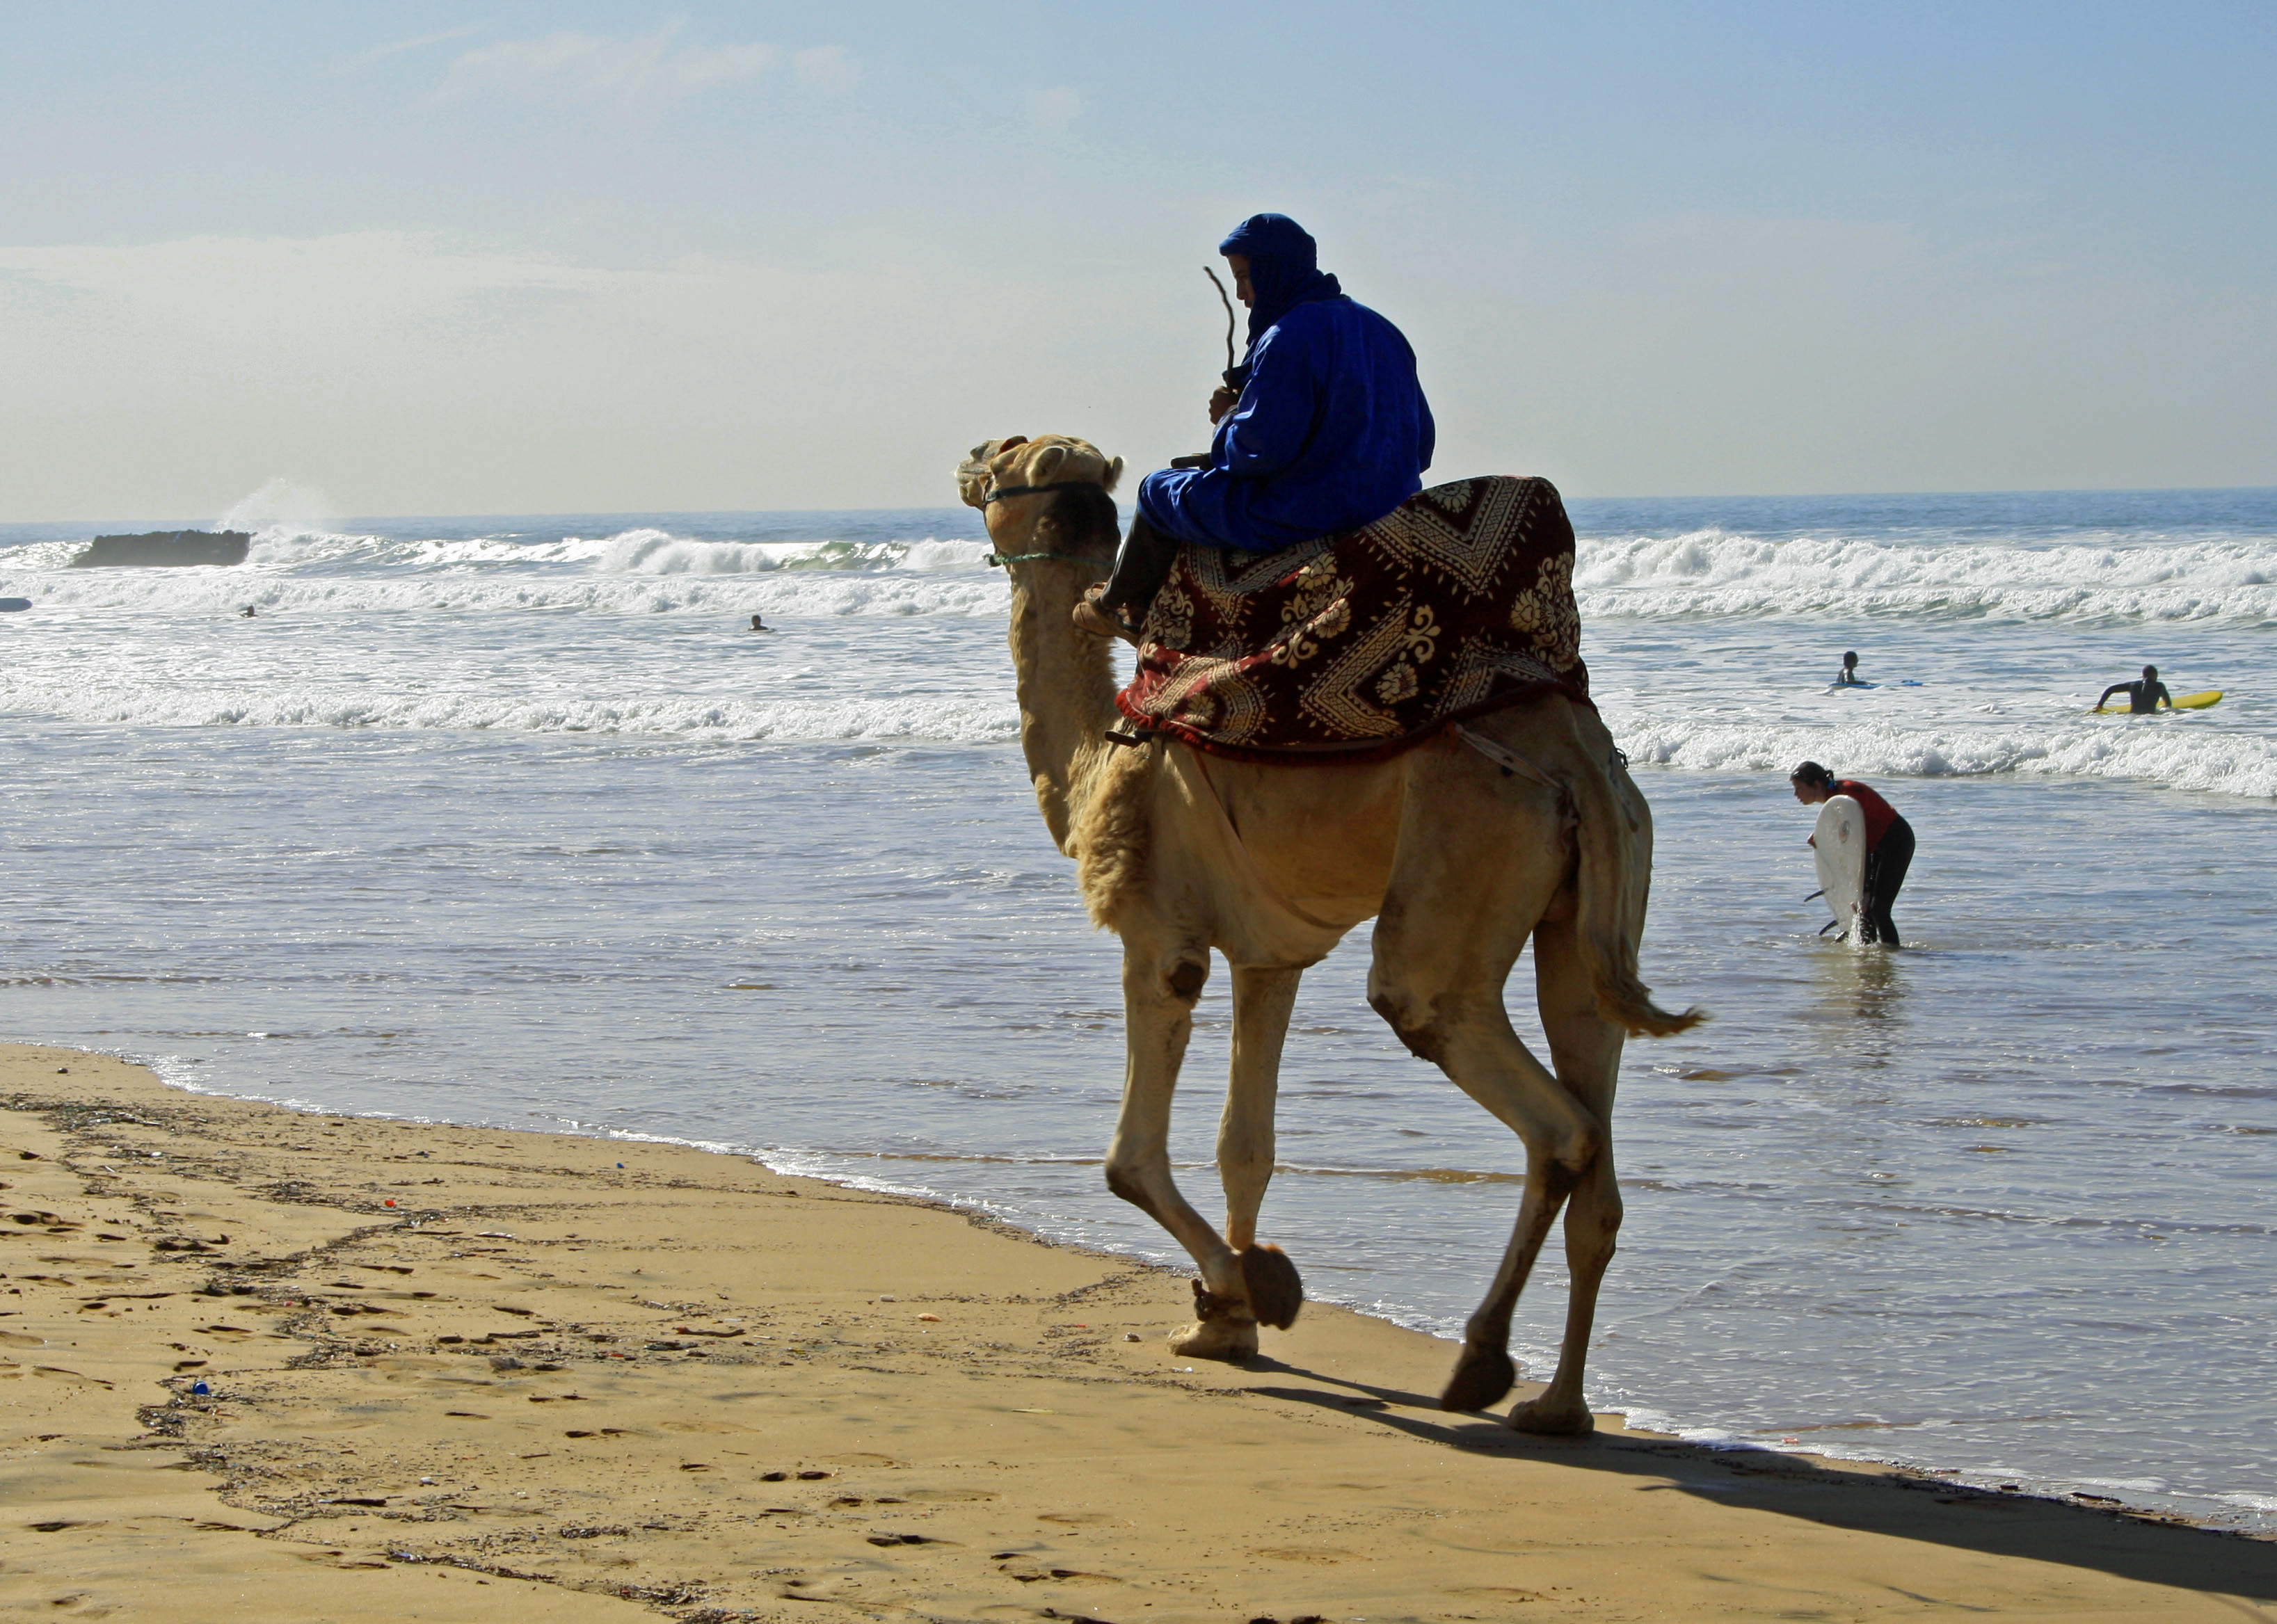 Camel in Morocco | The Spot Morocco,Taghazout, surf Morocco, where to surf in Morocco, surf camp Morocco, surfing Morocco, Morocco surf